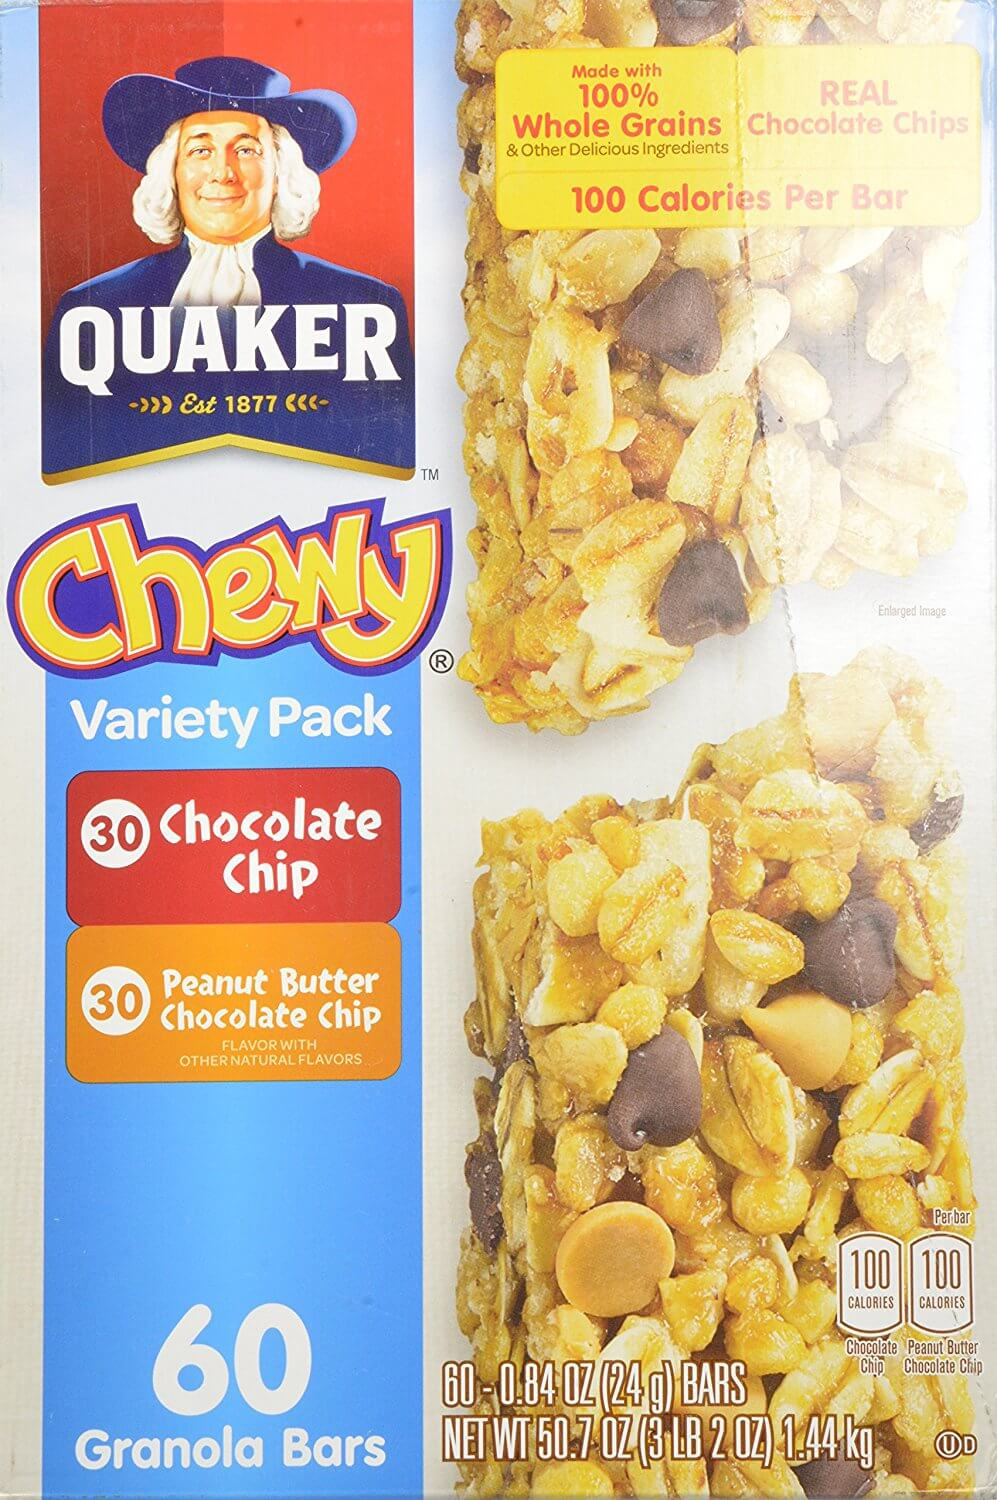 Quaker Chewy (Peanut Butter and Chocolate Chip)